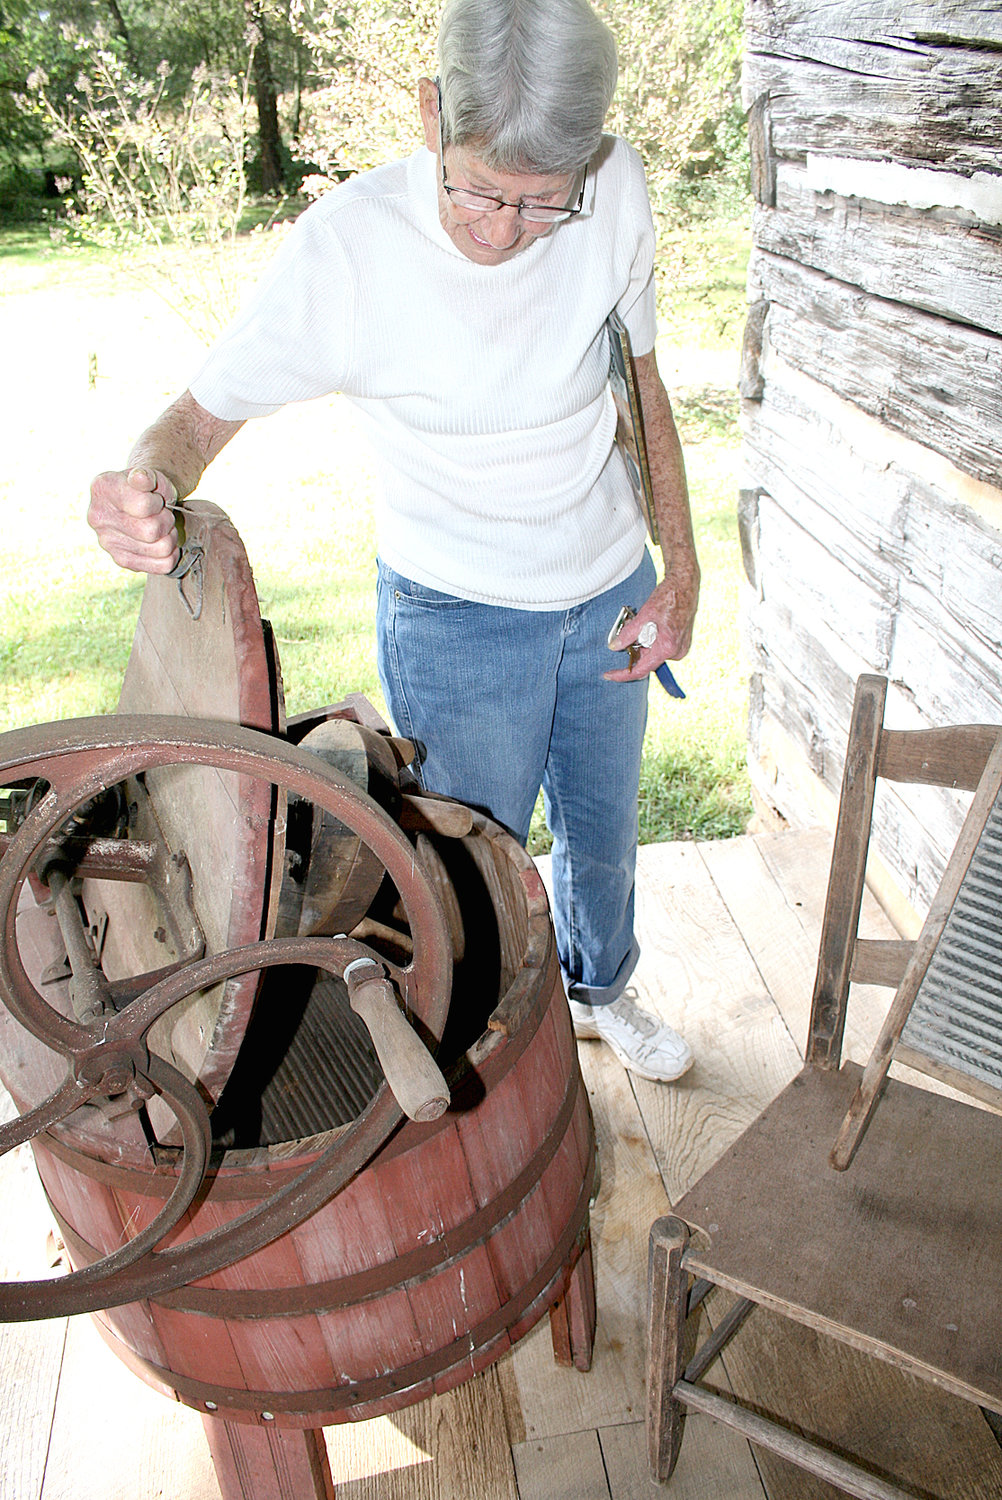 A WOODEN washing machine is one of several items on display at Pioneer Day Open House at the Village at Hawk Creek. Owner Sally Newman states she must fill it with water a few days prior to use in order for the water to swell the wooden planks and prevent leakage during use.